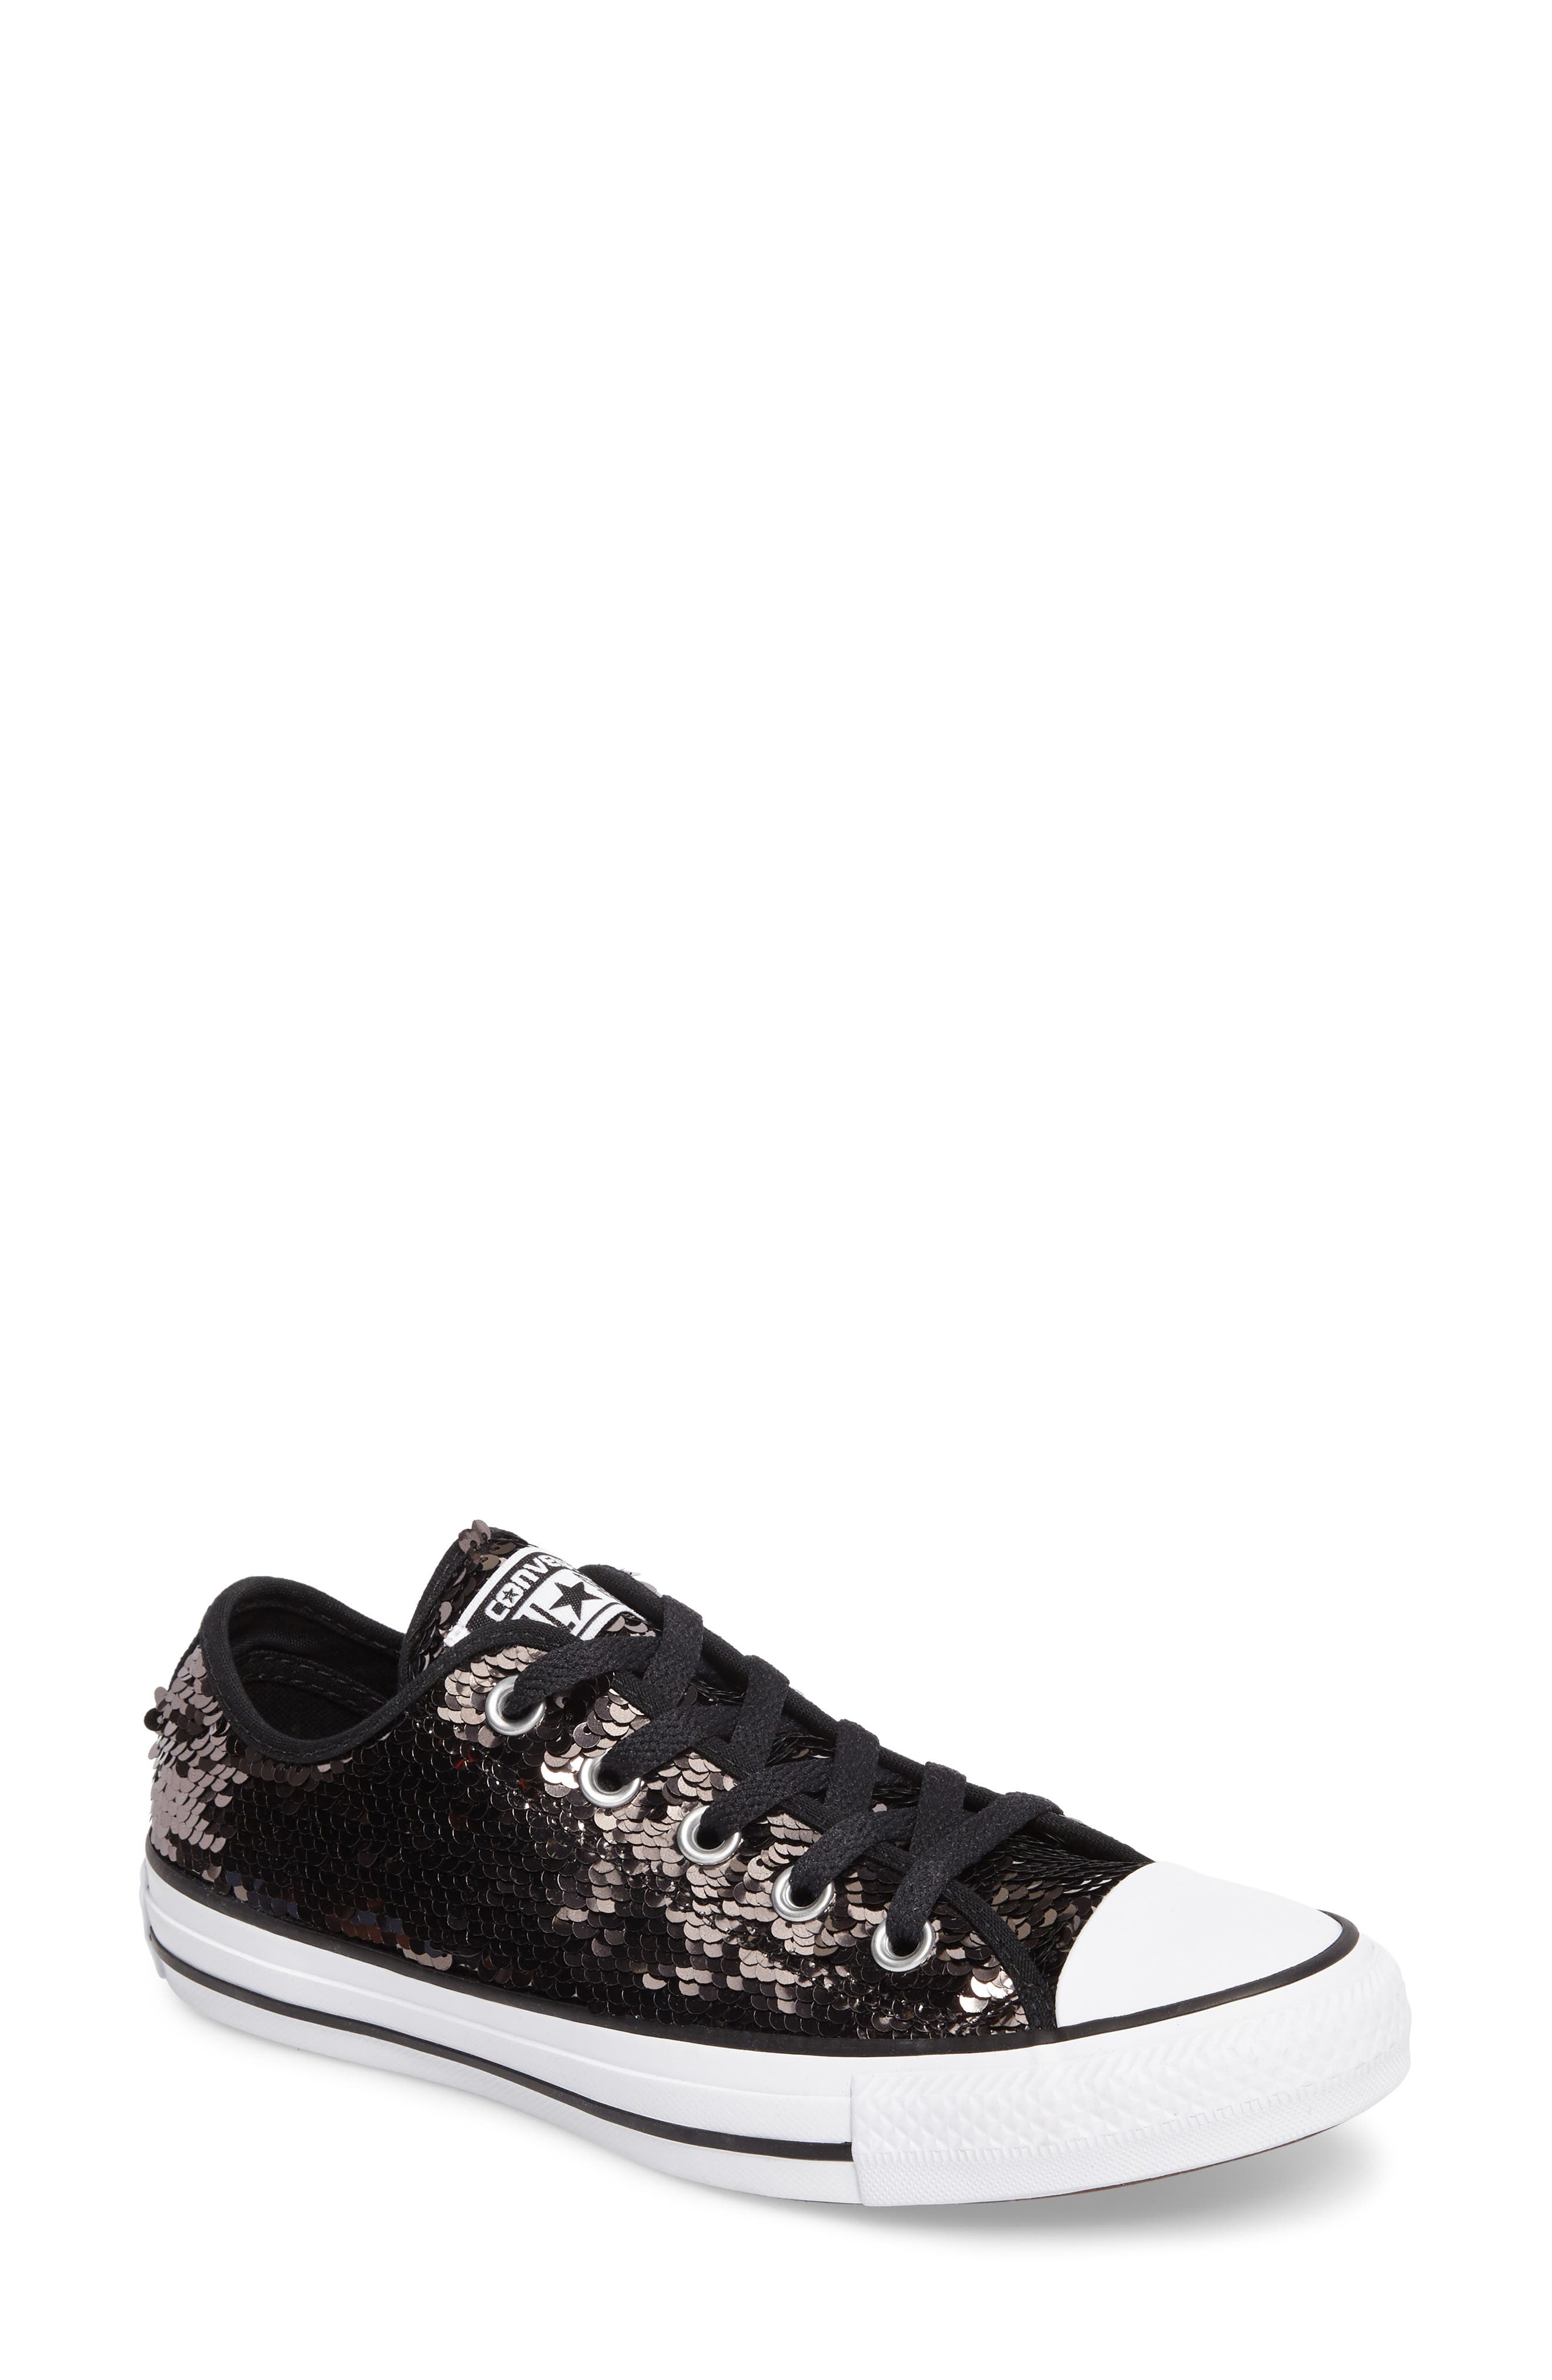 Chuck Taylor<sup>®</sup> All Star<sup>®</sup> Sequin Low Top Sneaker,                         Main,                         color,